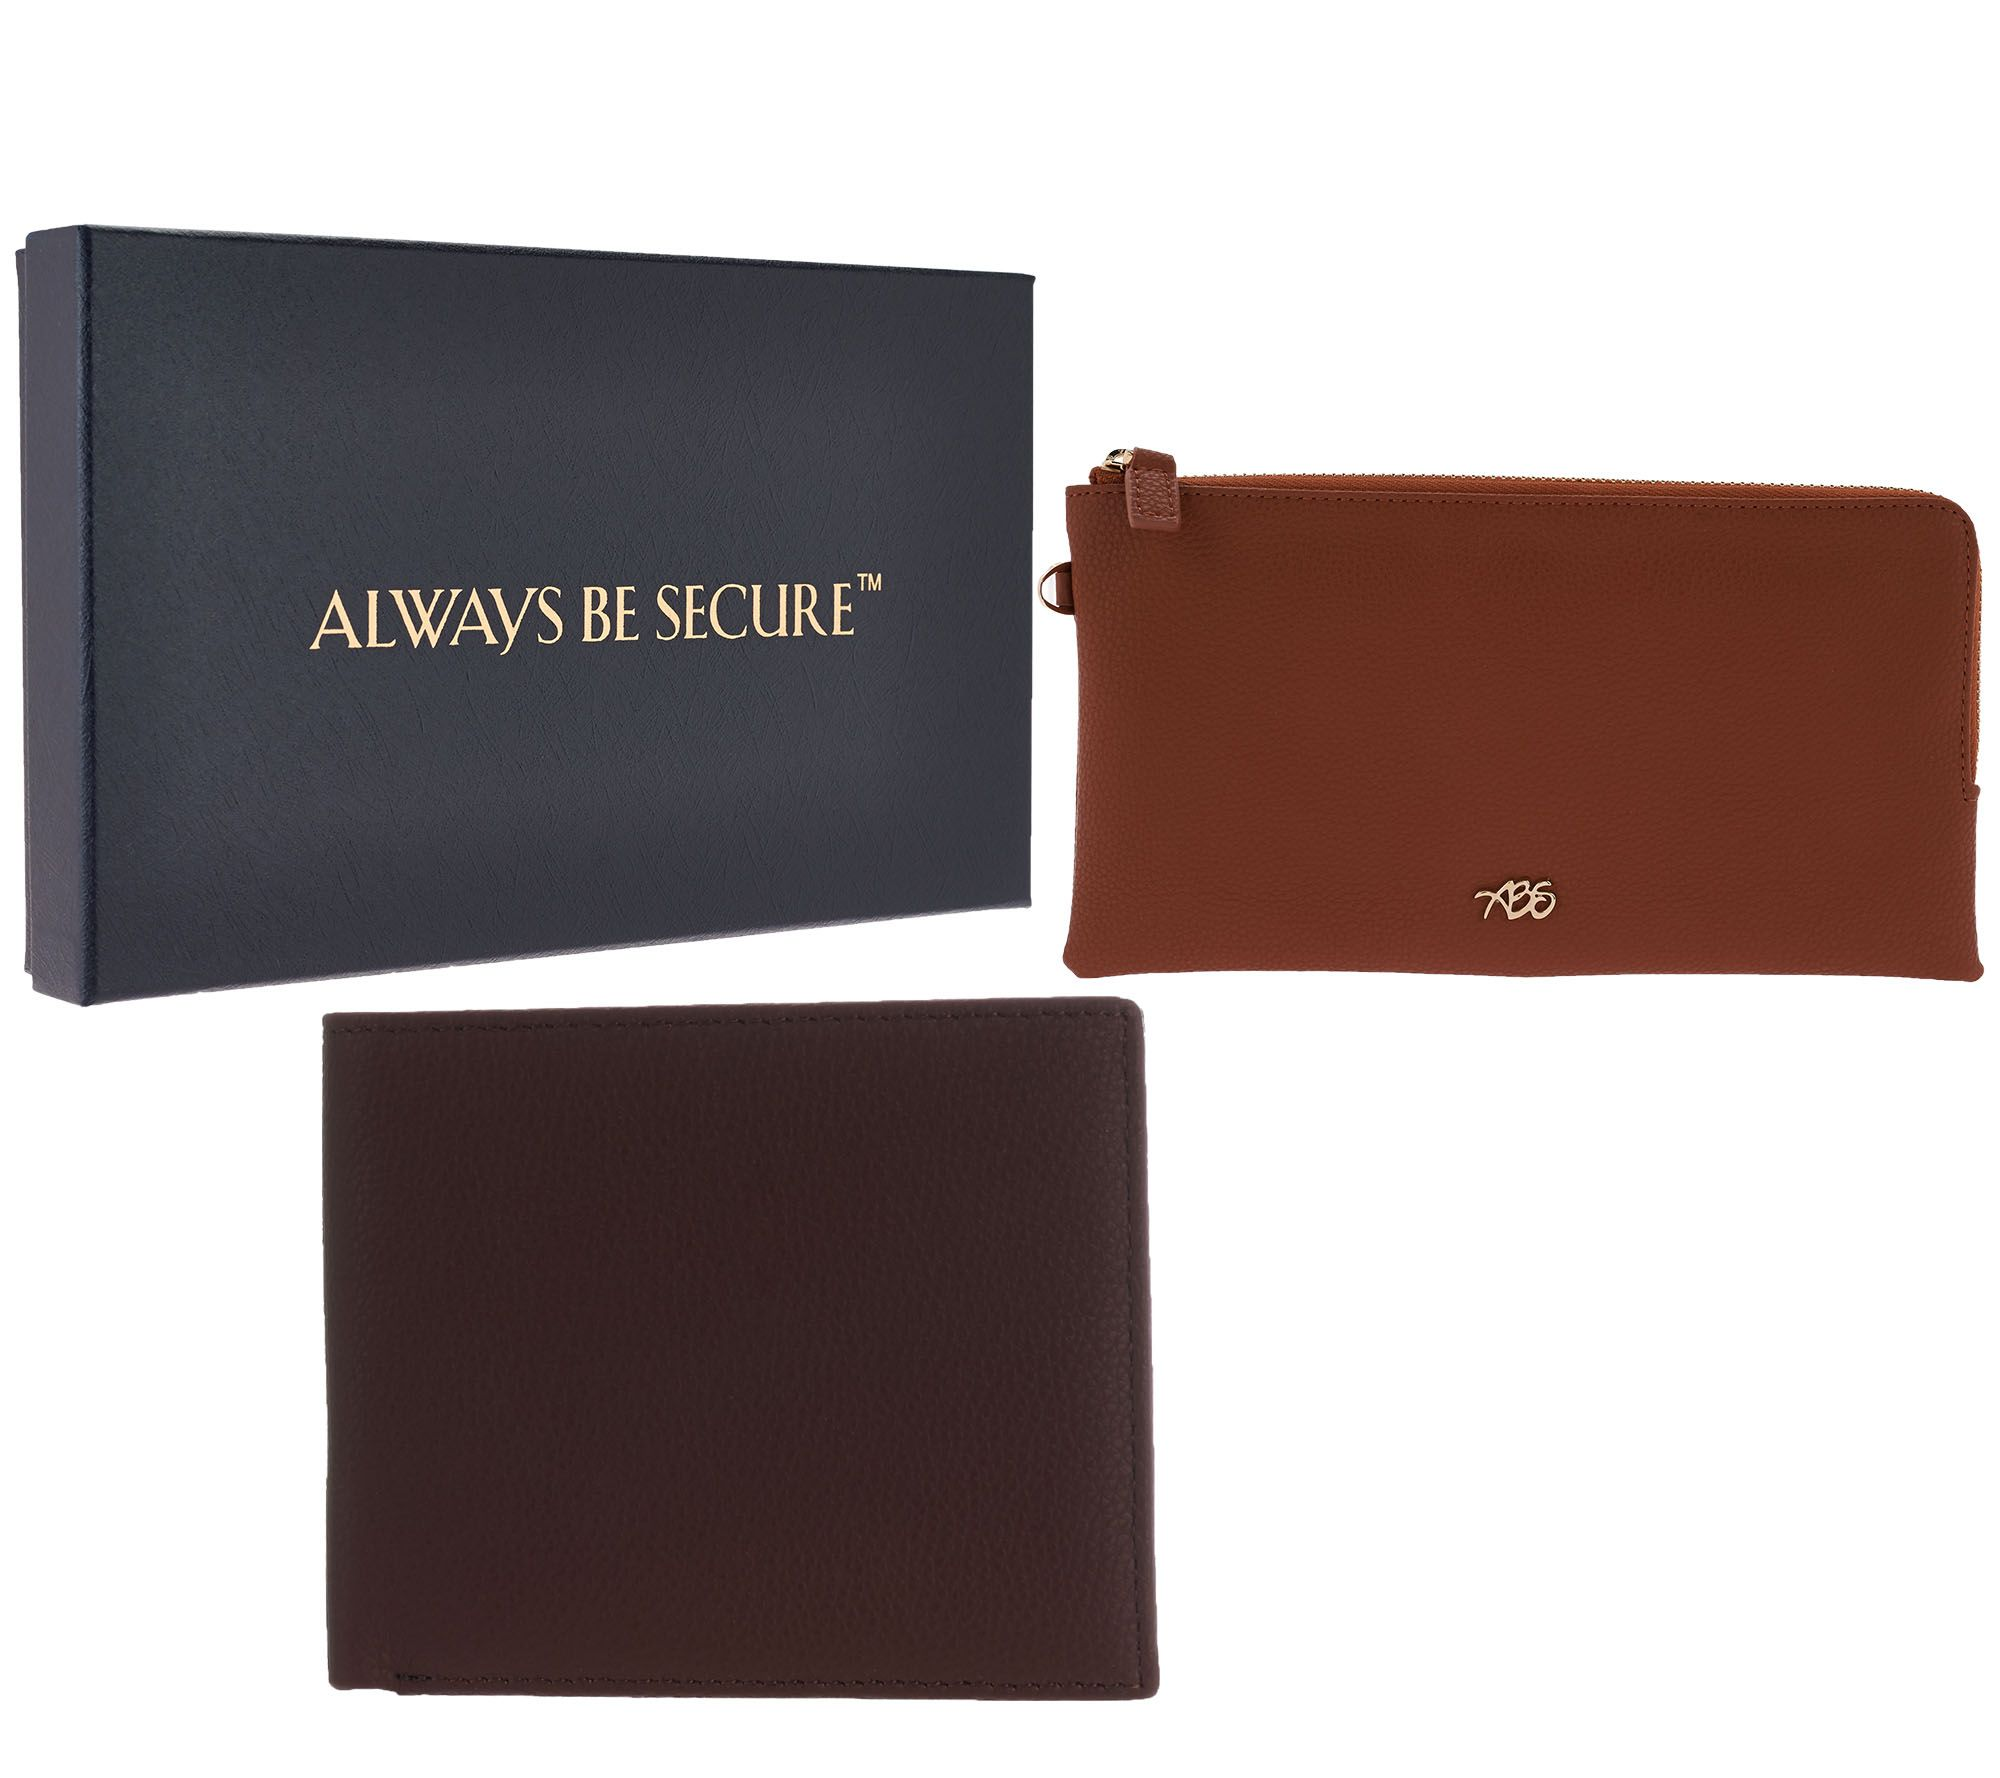 Always Be Secure RFID Leather Wristlet or Tri-Fold Wallet